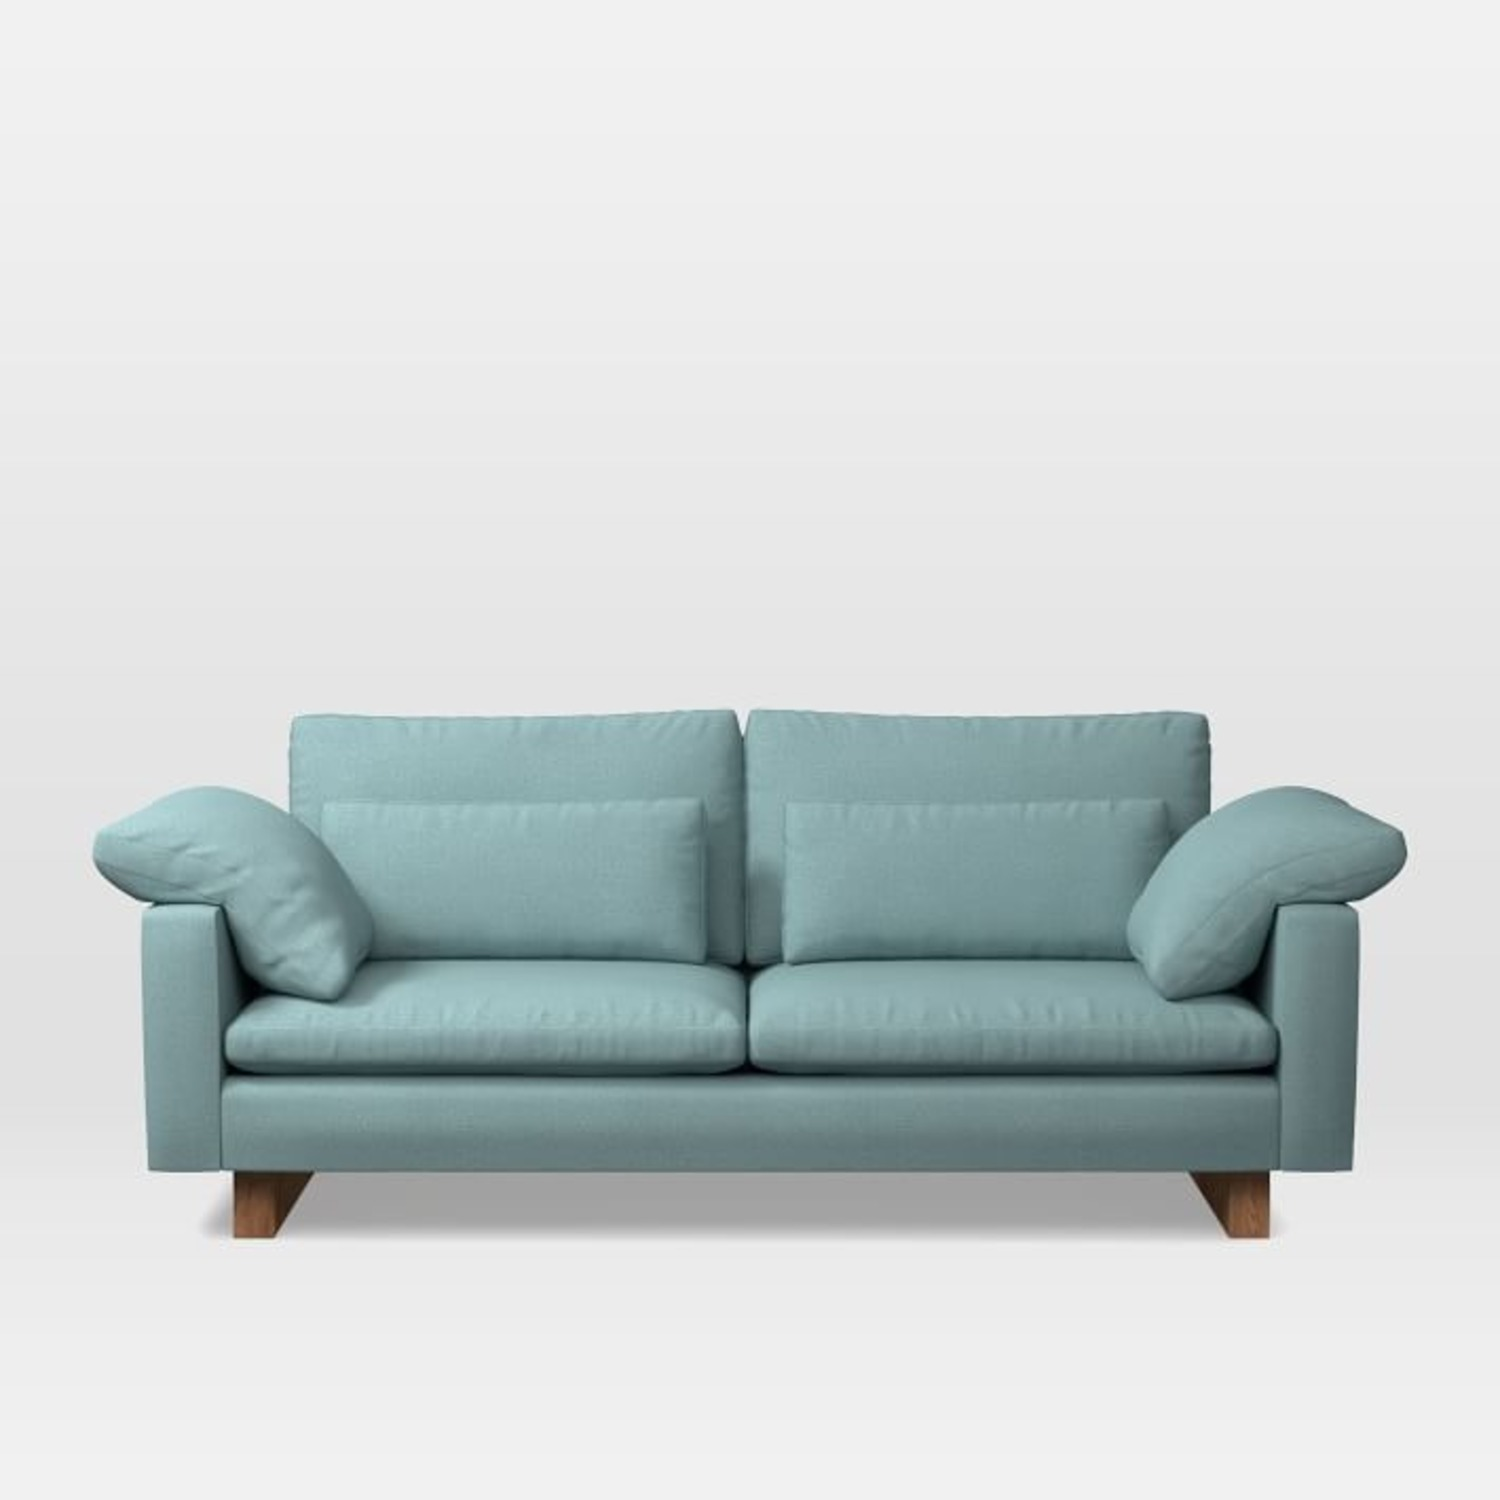 West Elm Harmony Sofa - image-1